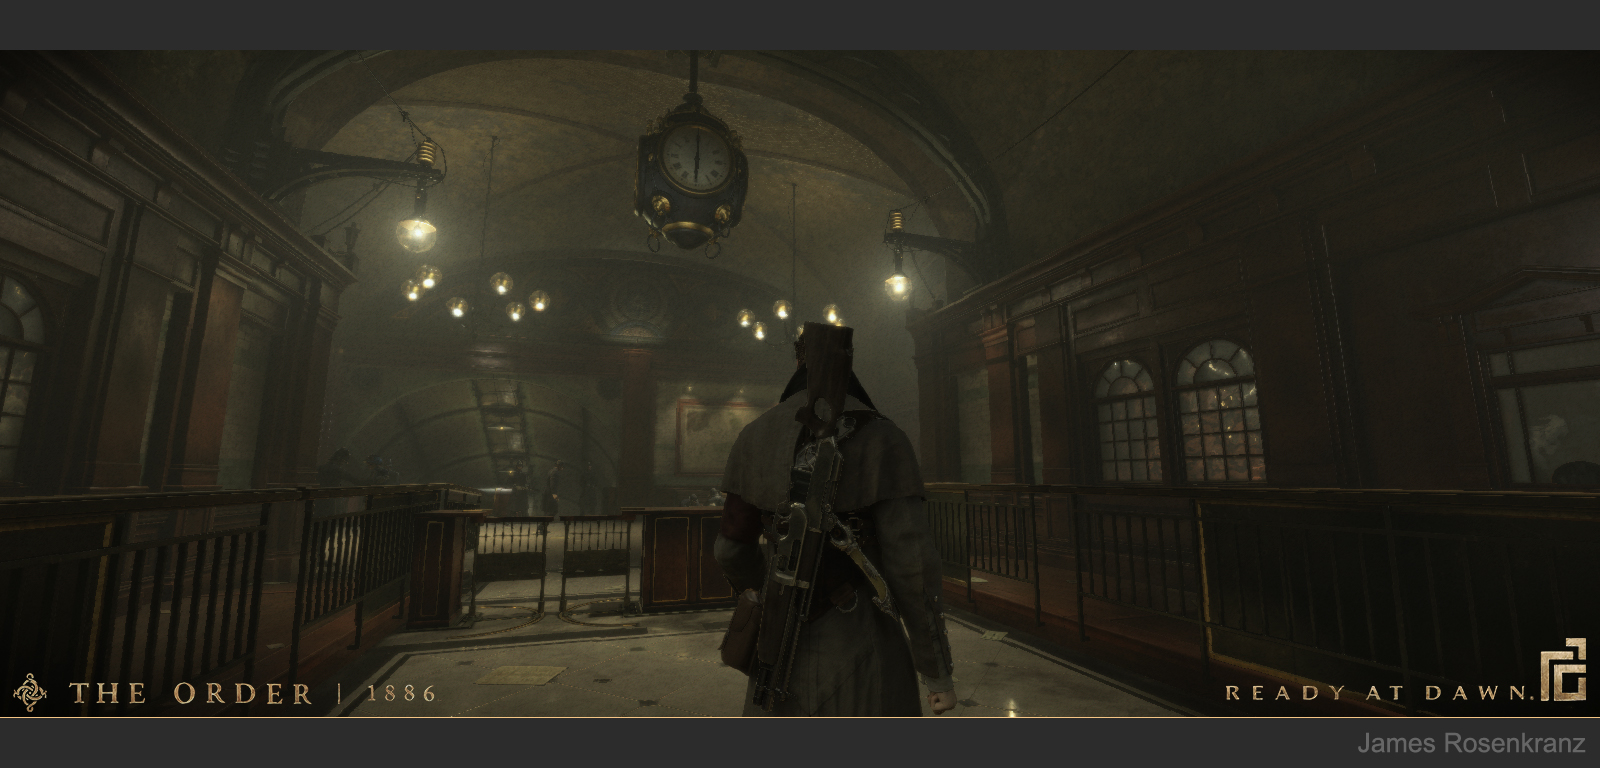 the-order1886-old-1